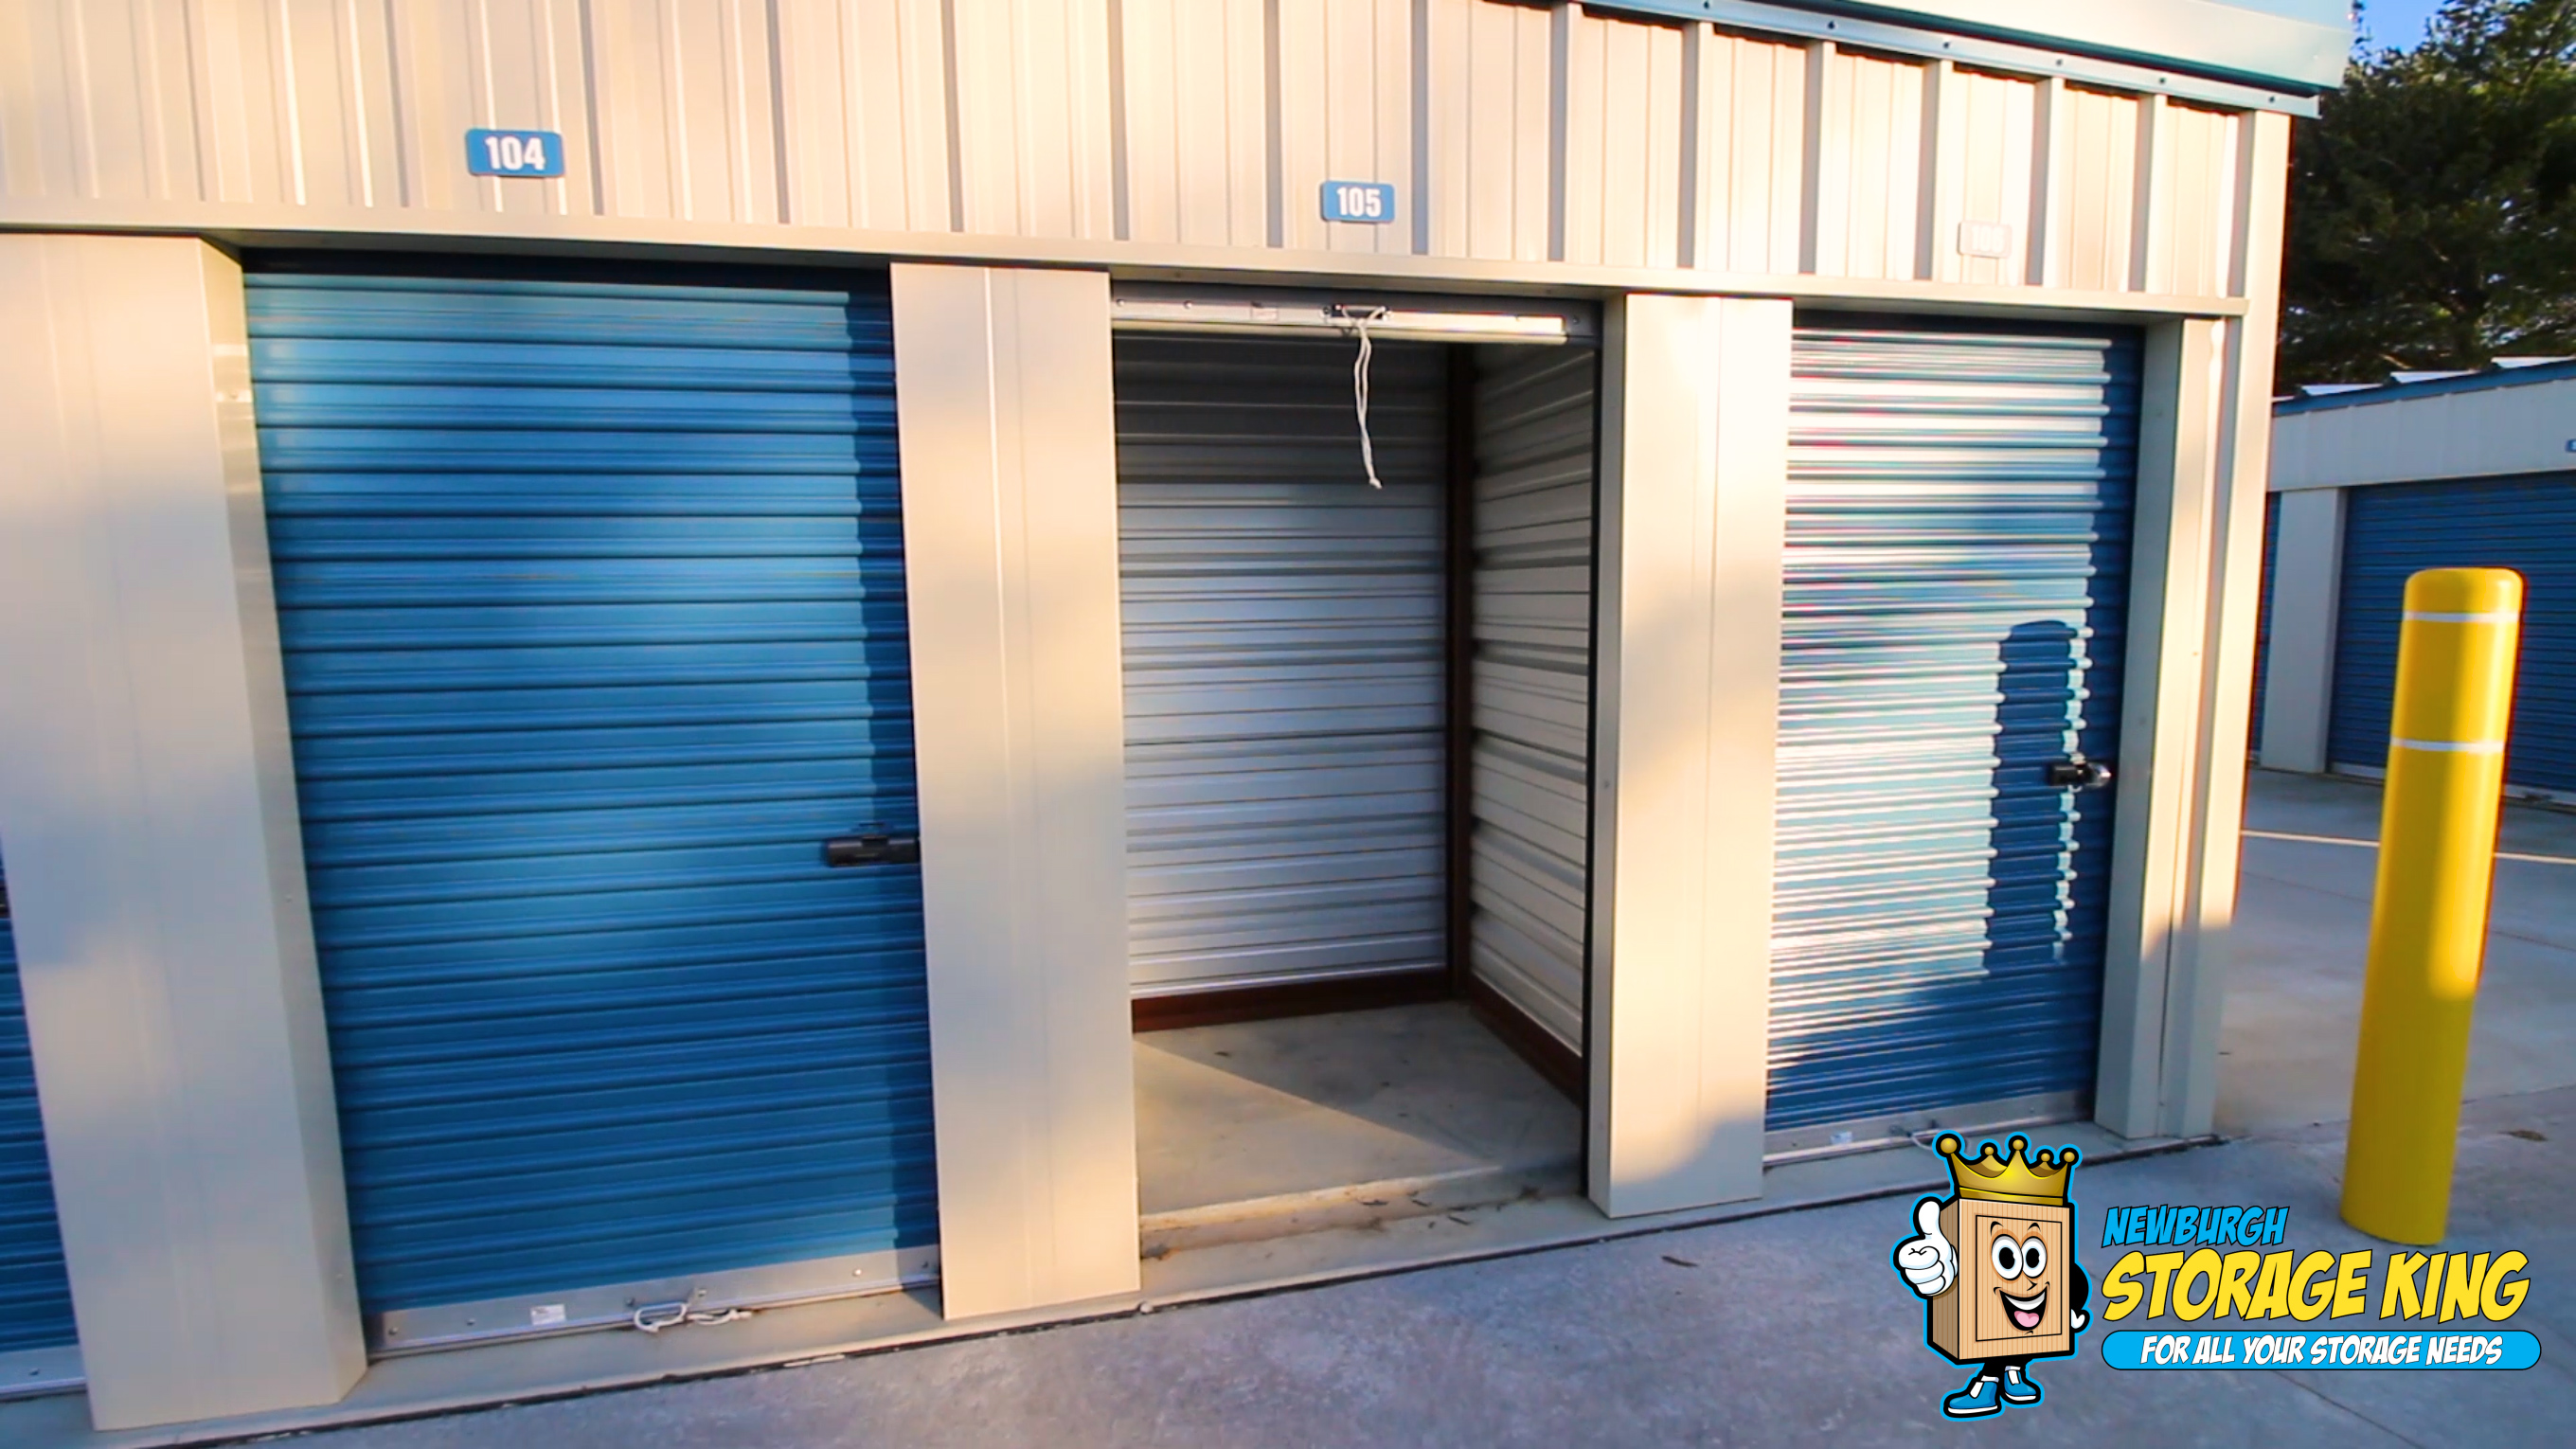 Small storage units with doors open